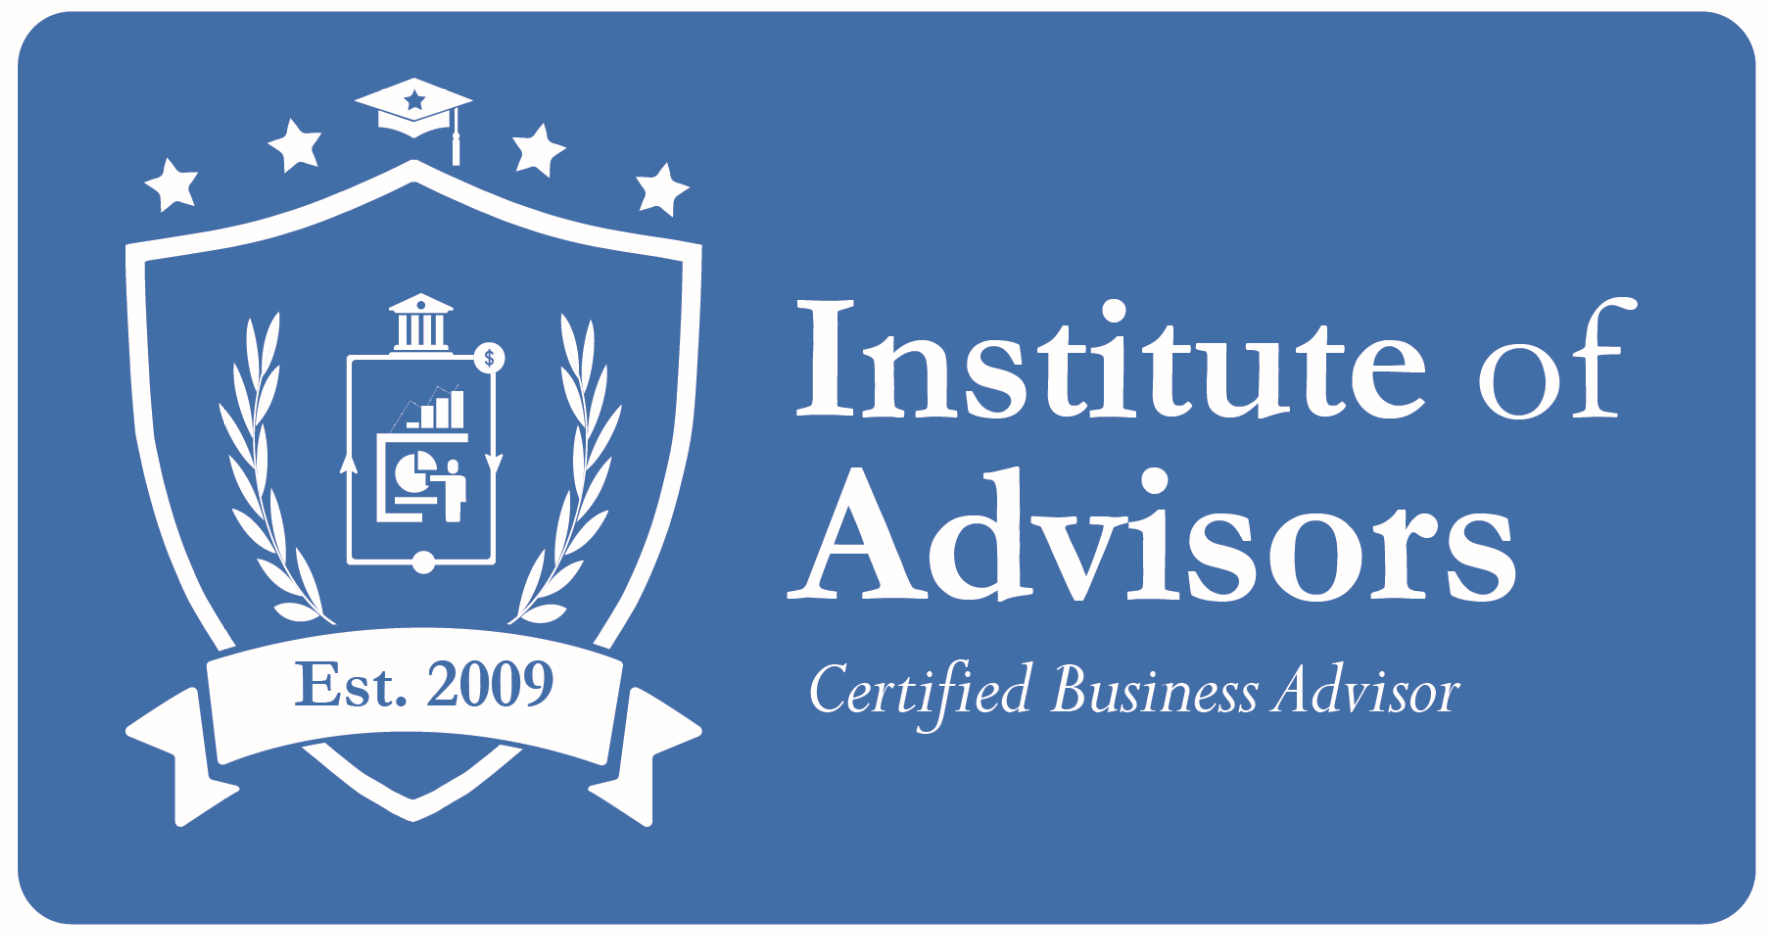 Institute of Advisors